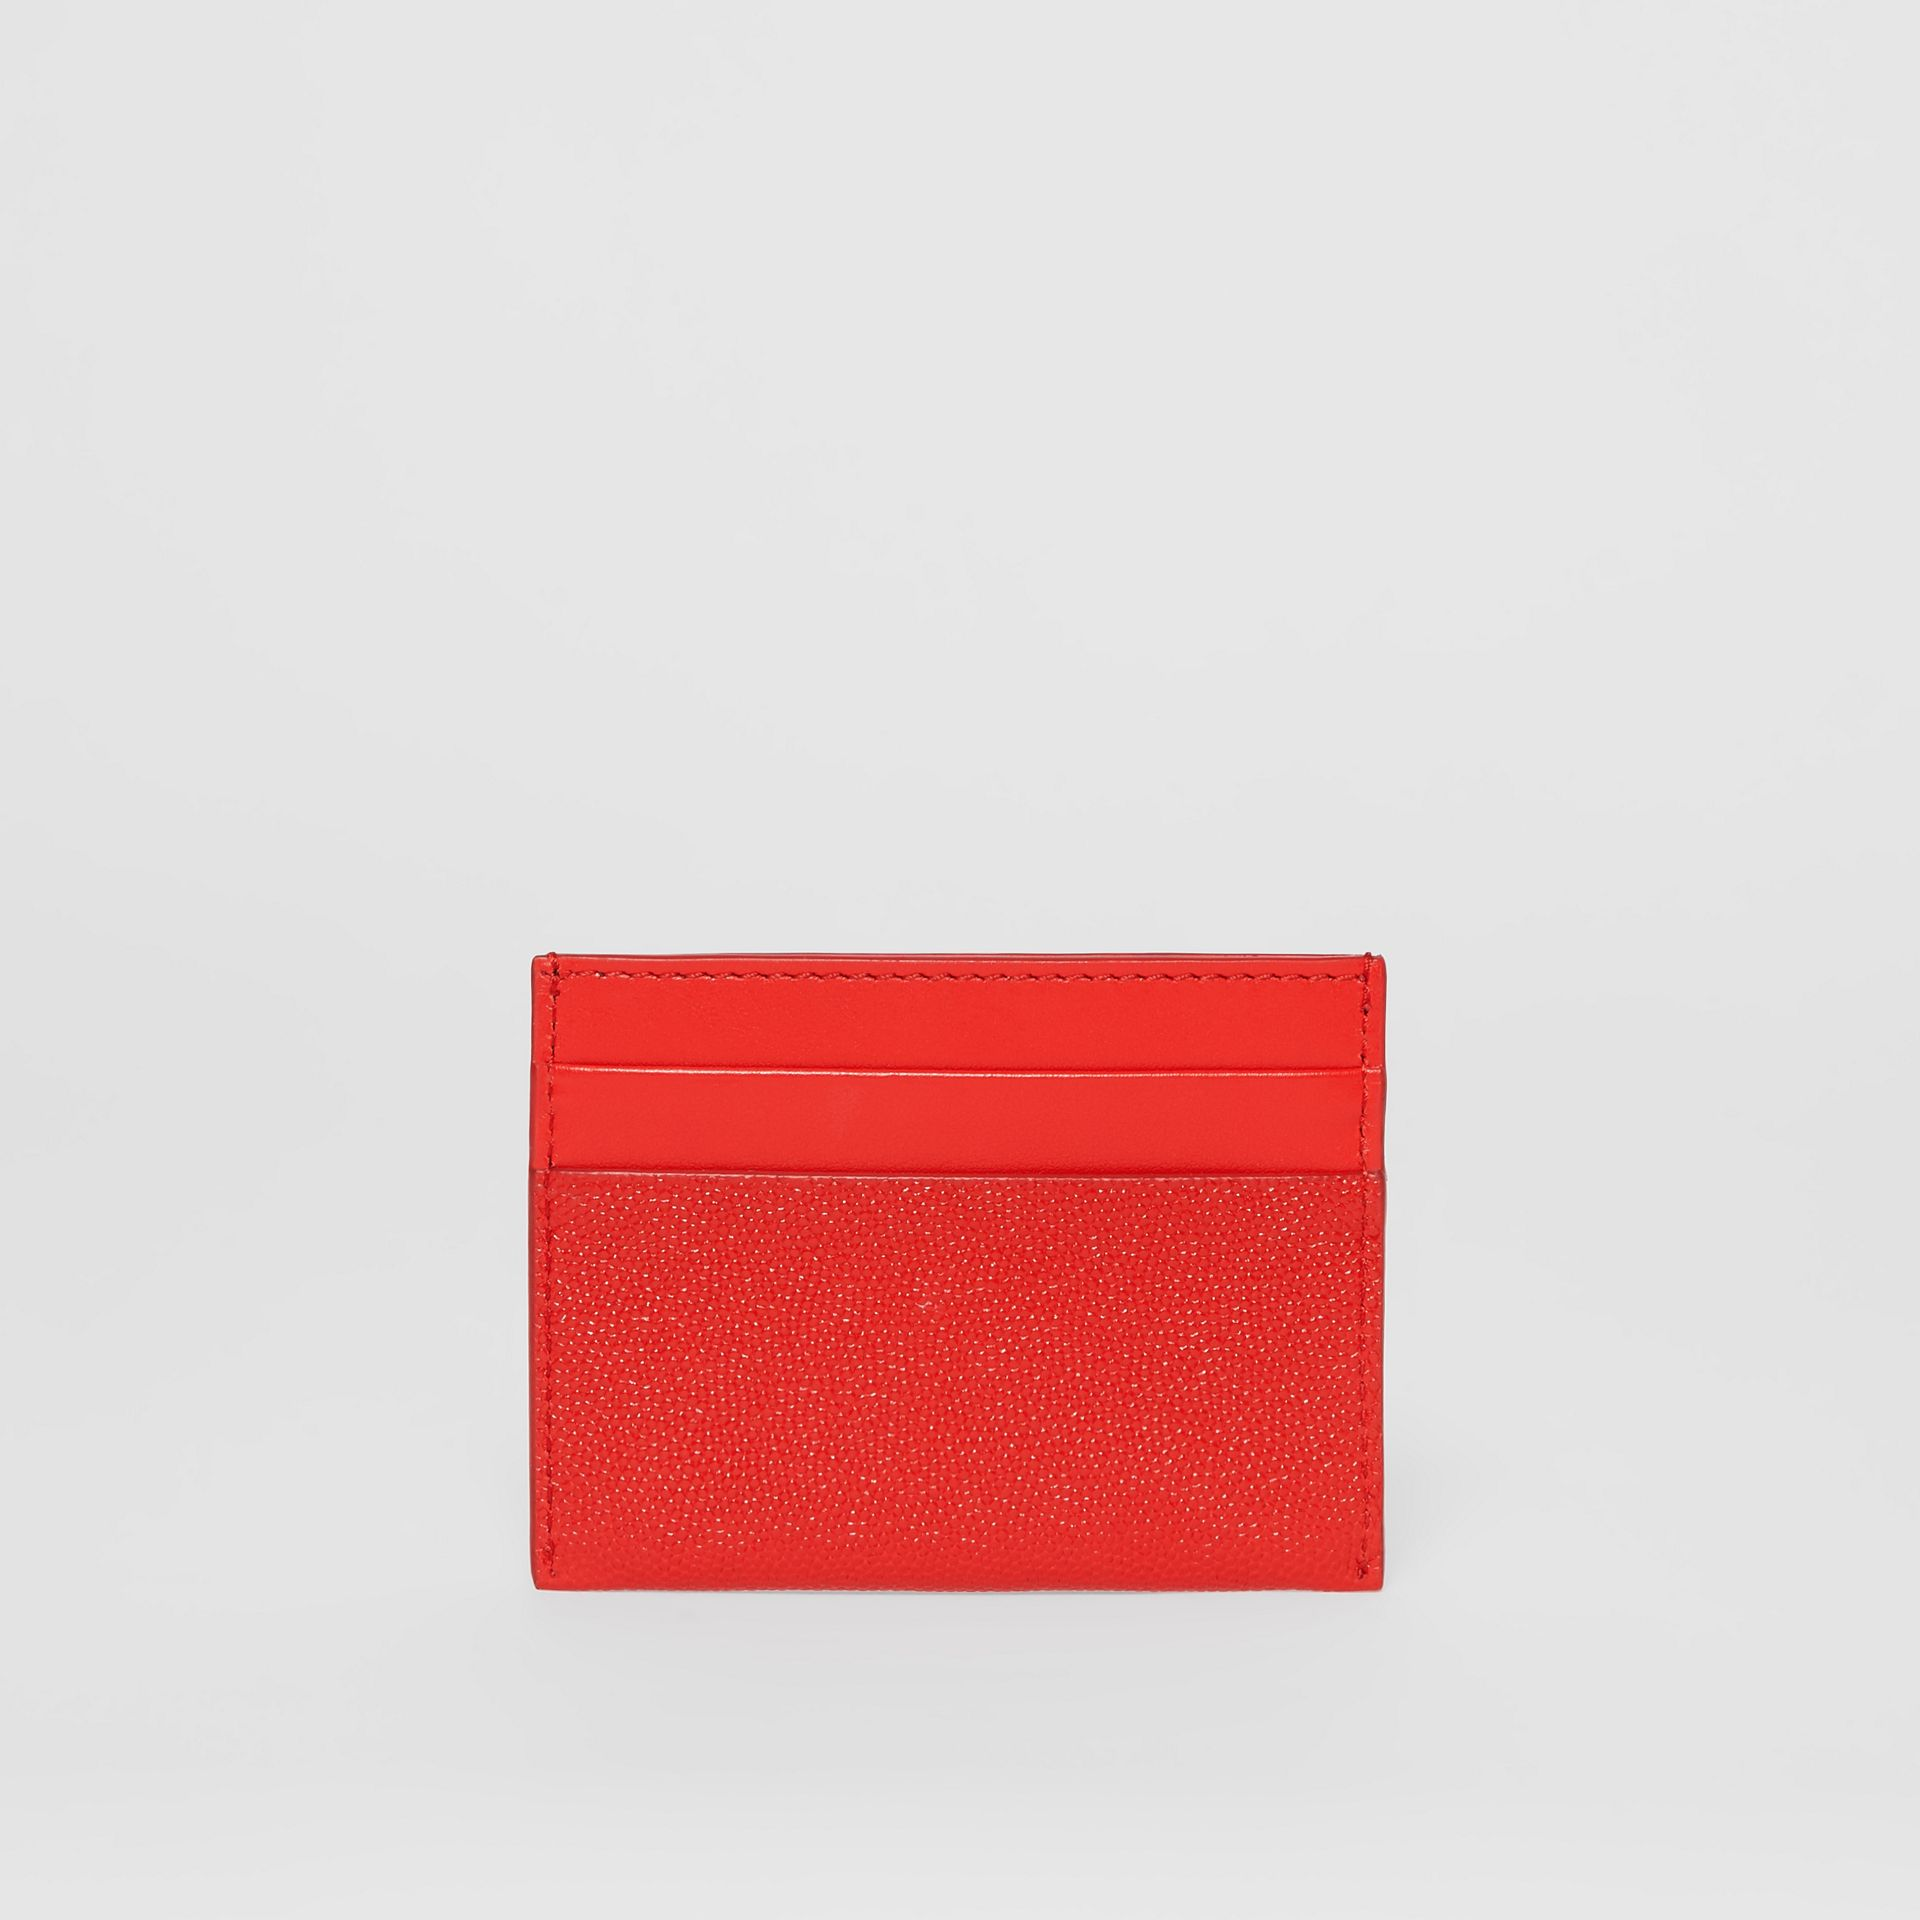 Monogram Motif Leather Card Case in Bright Red - Women | Burberry Australia - gallery image 4